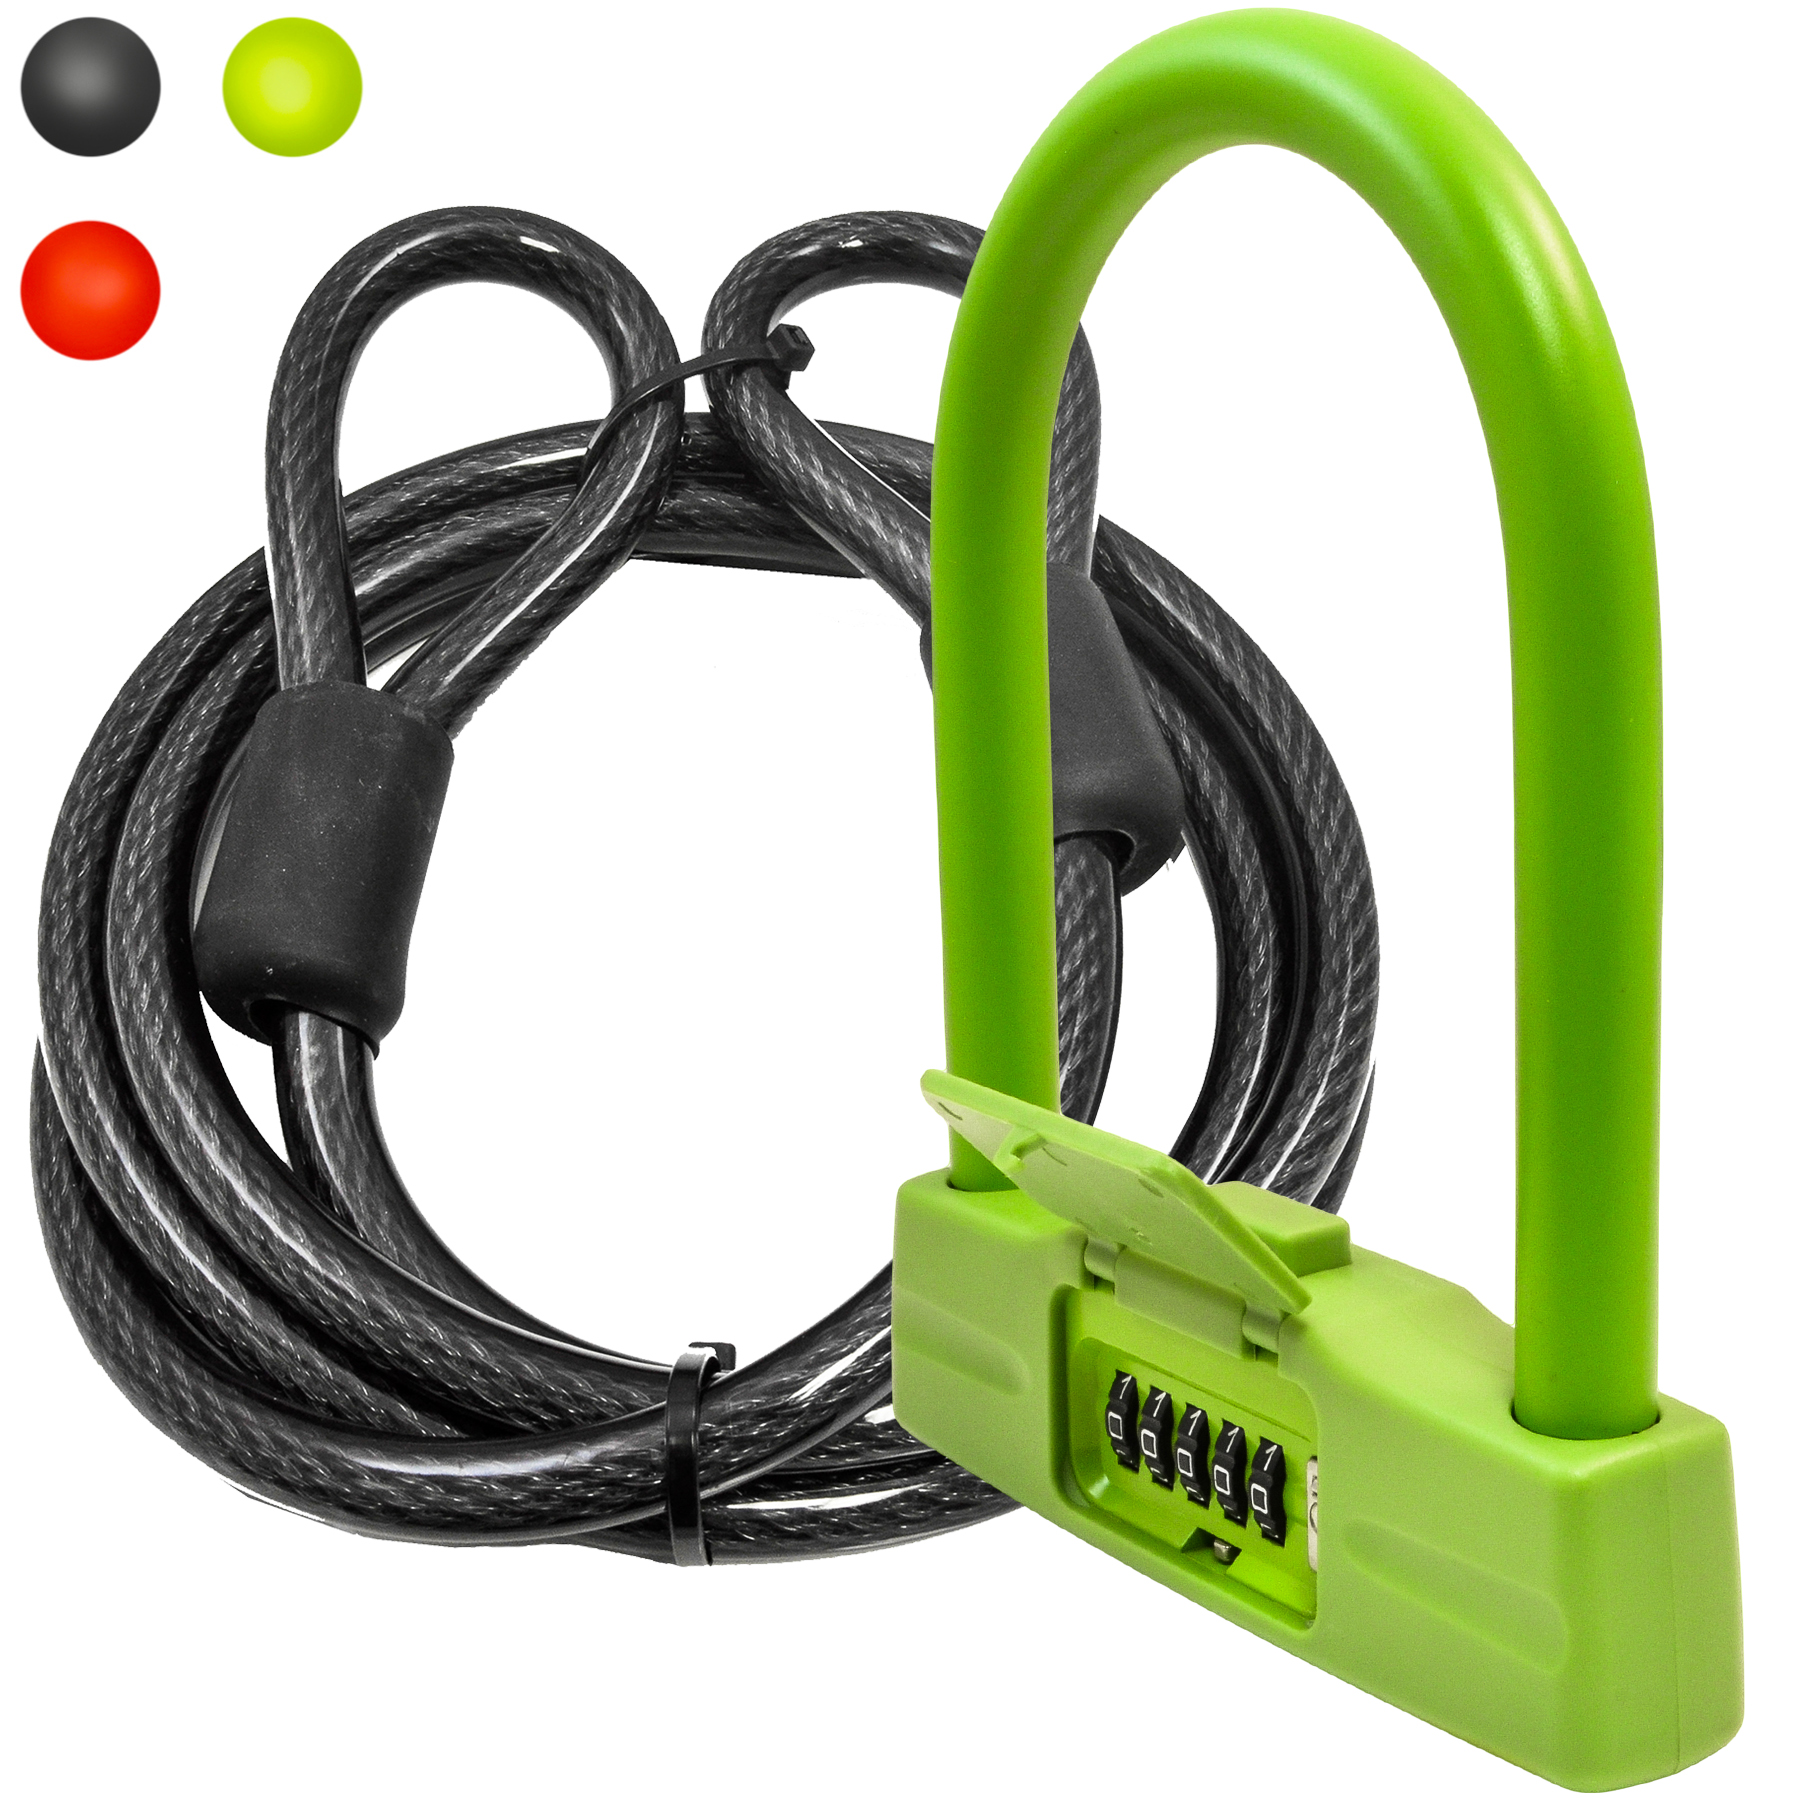 Lumintrail 18mm 5 Digit Combination Bike U-Lock with Optional 4-Foot or 7-Foot Braided Steel Security Cable